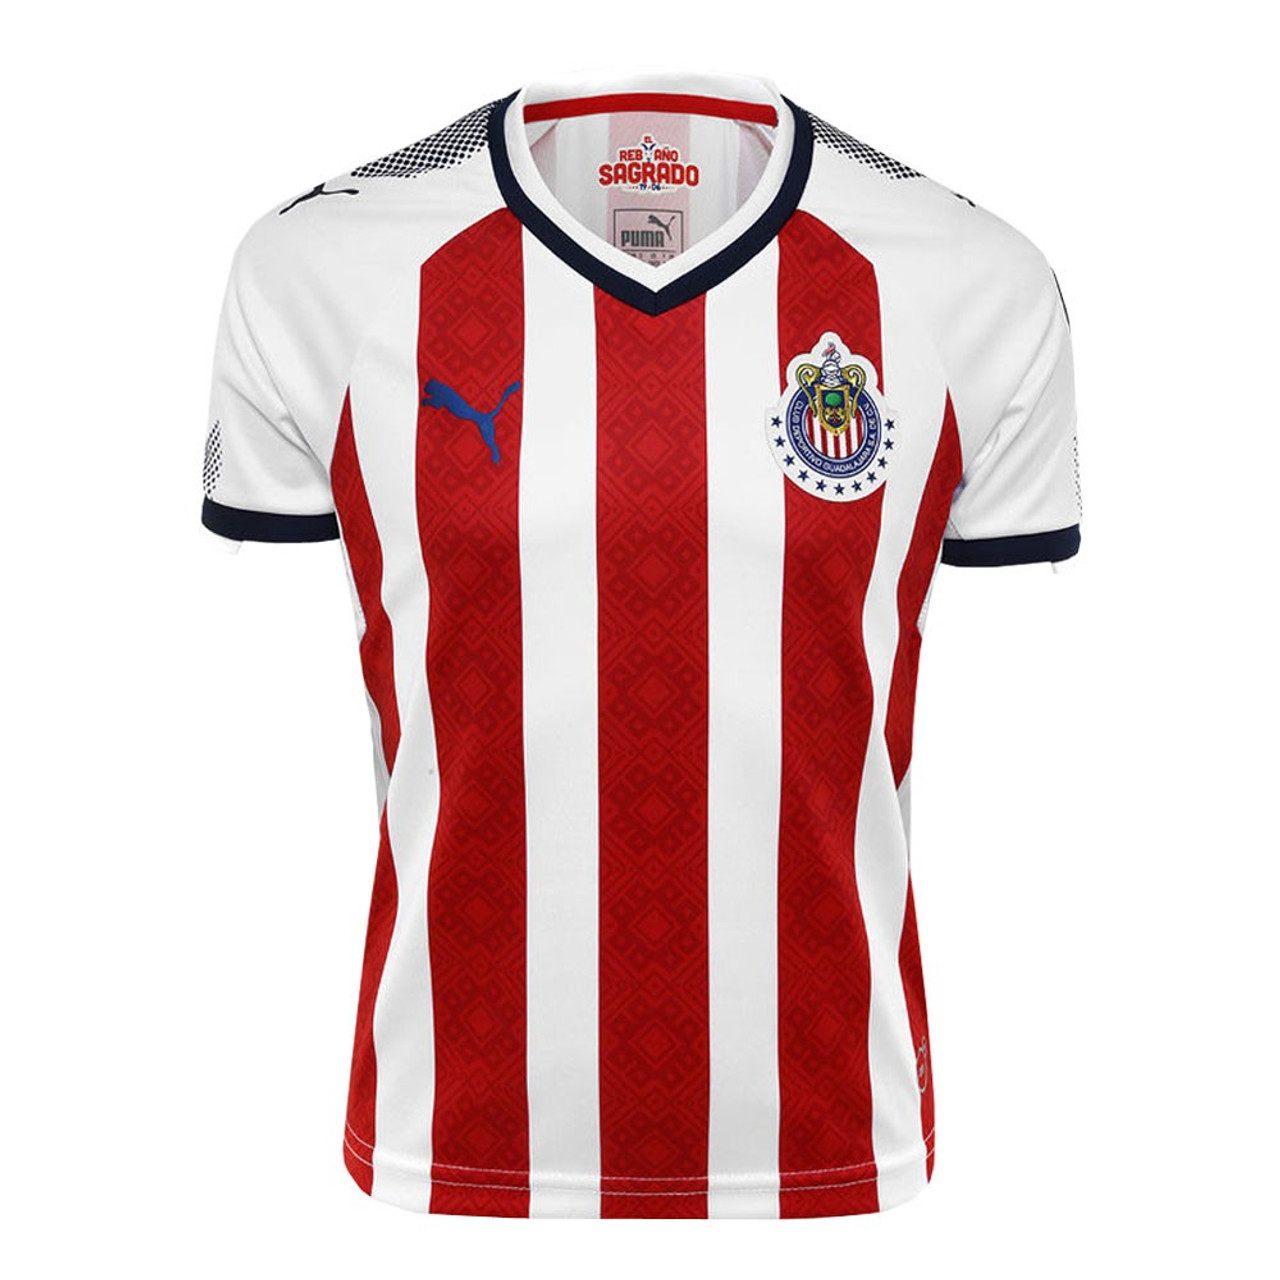 fc6df5854c2 Puma Chivas Youth 2017 18 Home Jersey - Red Navy White RC (11819) - ohp  soccer